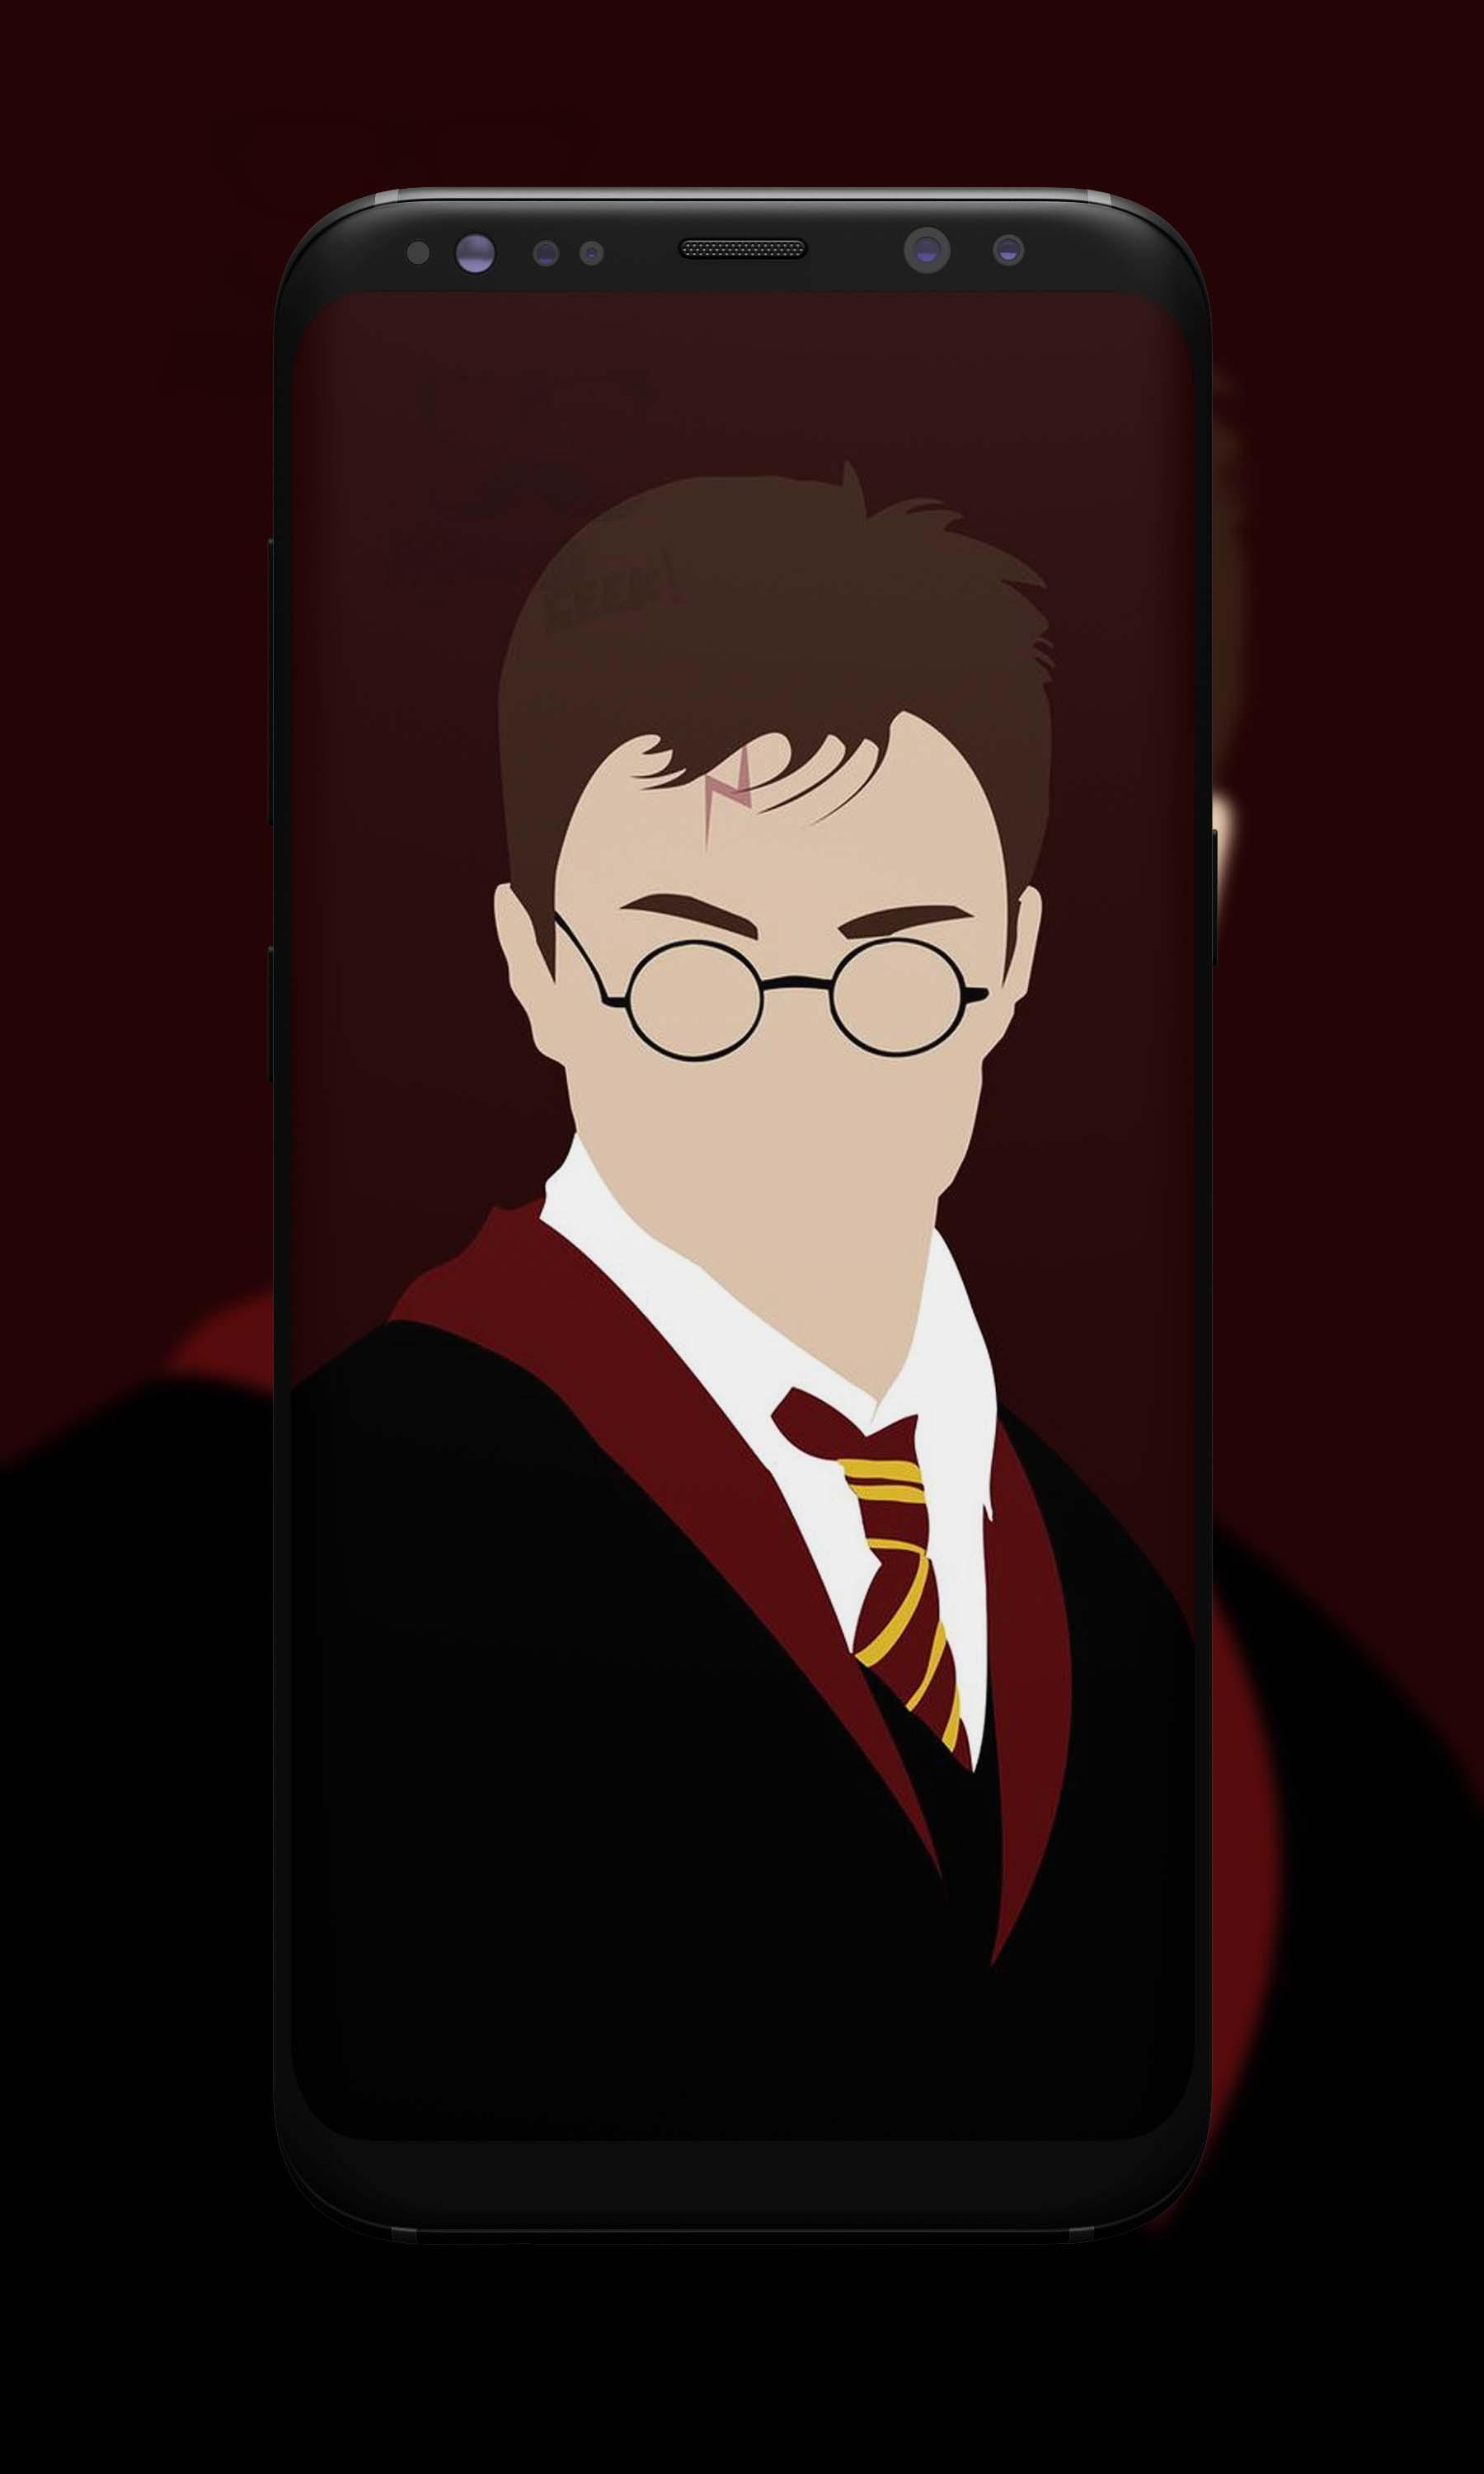 Harry Potter Droid Wallpapers On Wallpaperdog